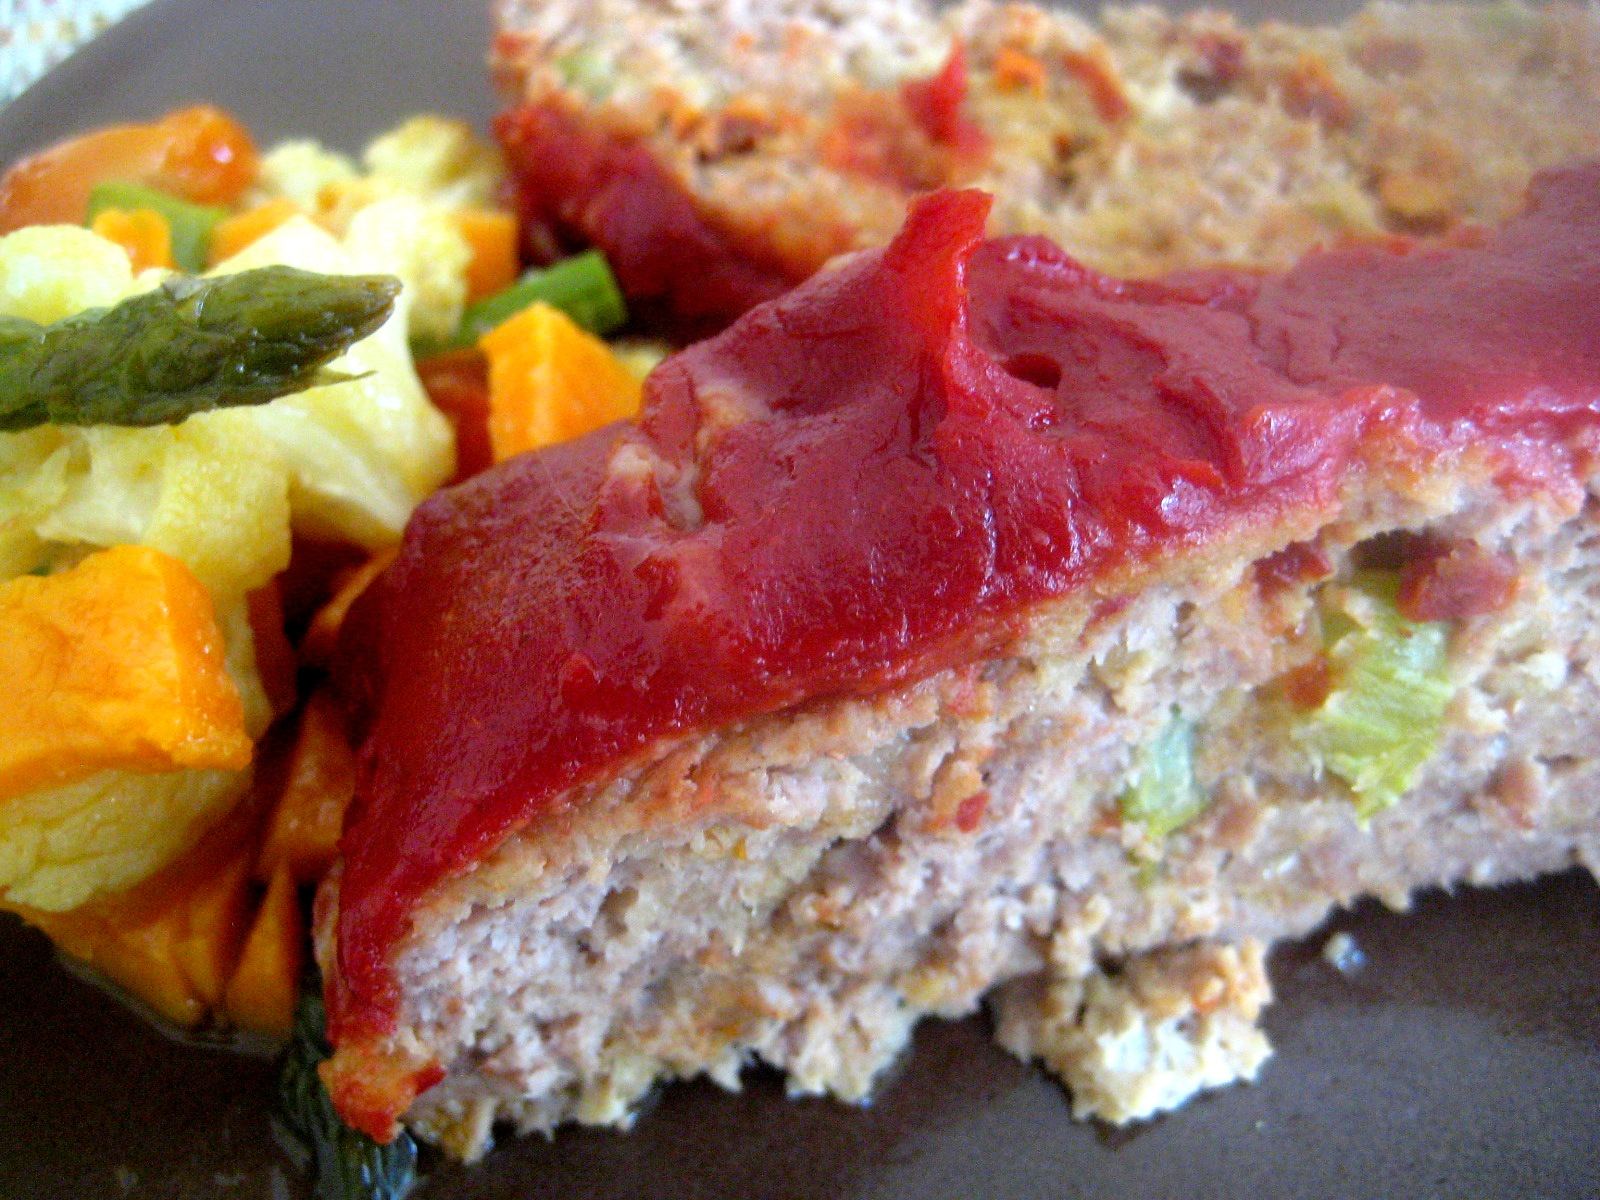 My Homemade Life: Don't Tell Mom. It's TURKEY MEATLOAF